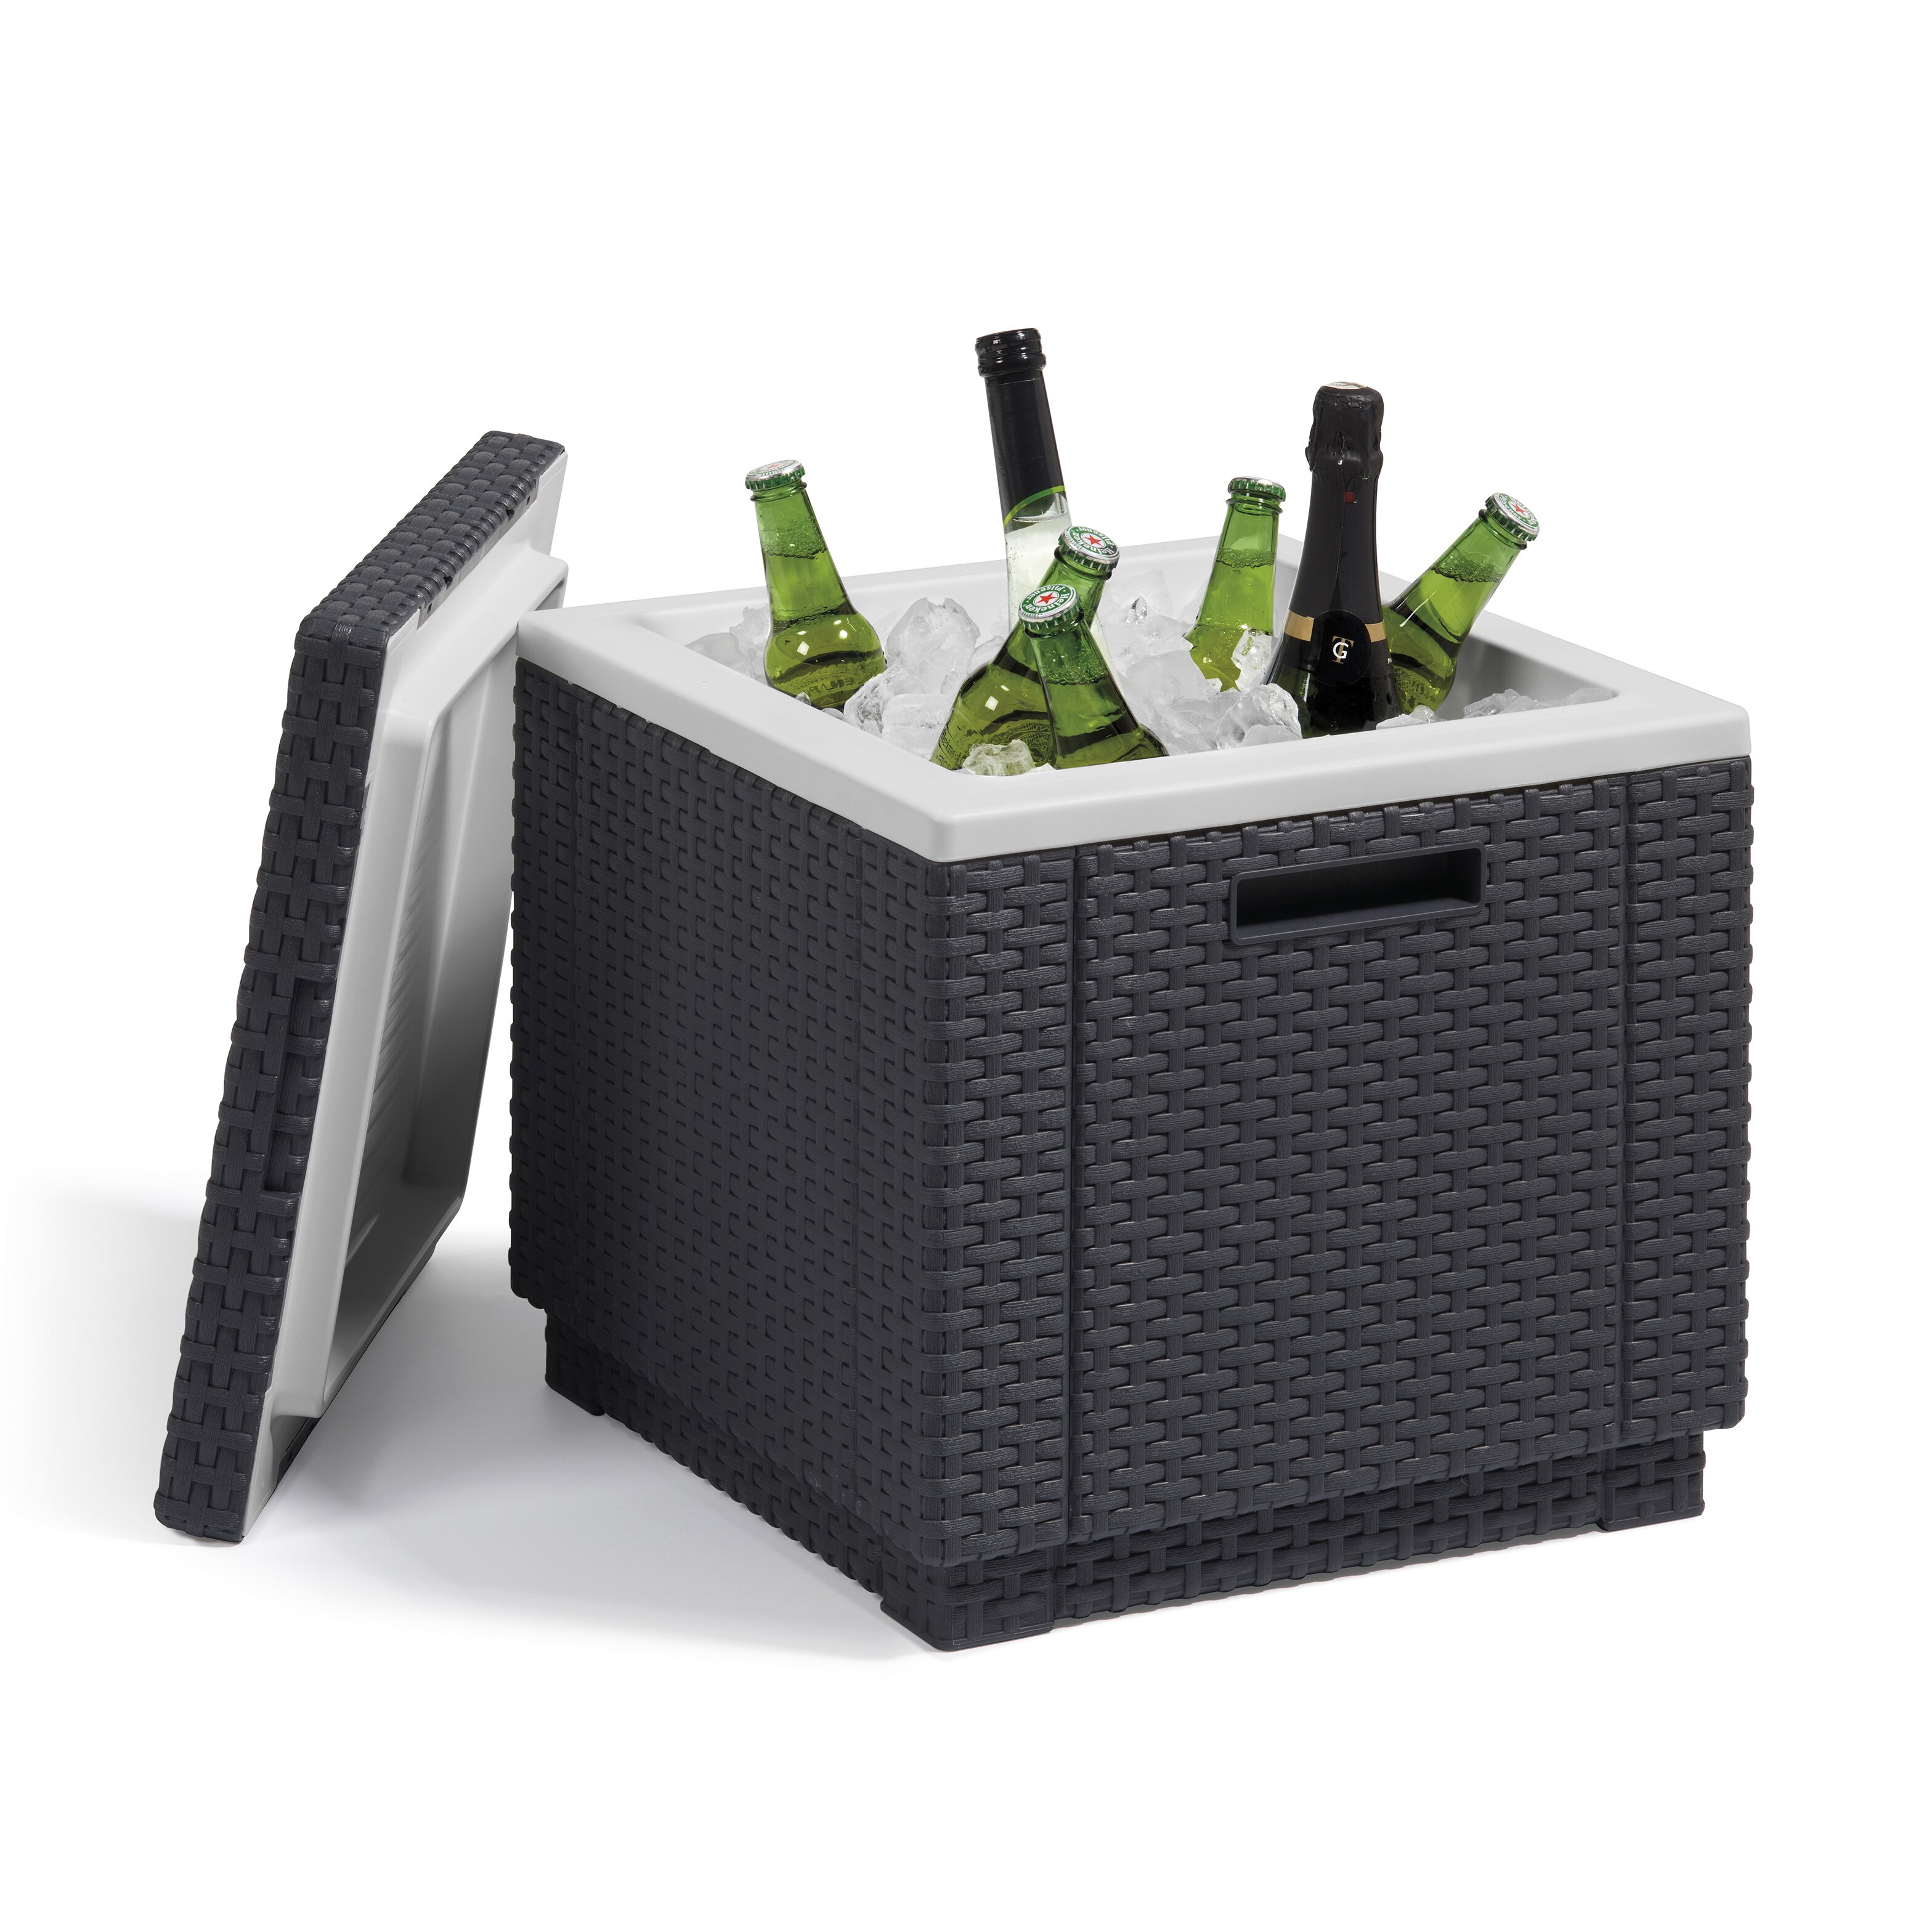 SunTime Outdoor Living Ice Cube Cooler & Reviews | Wayfair on Suntime Outdoor Living id=34575